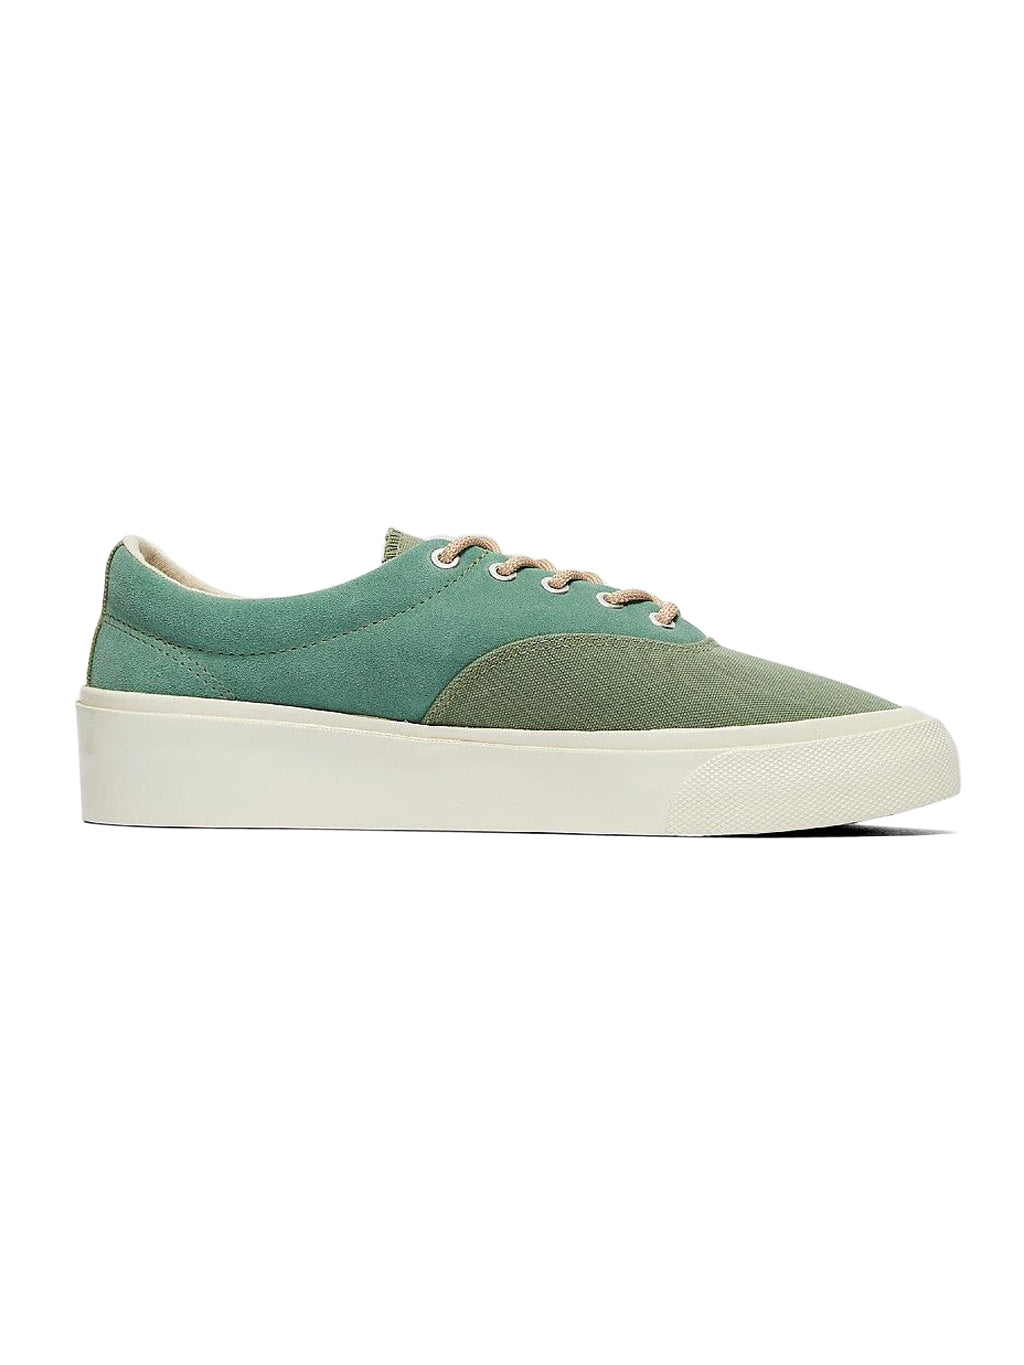 Green Skid Grip Ox Sneakers